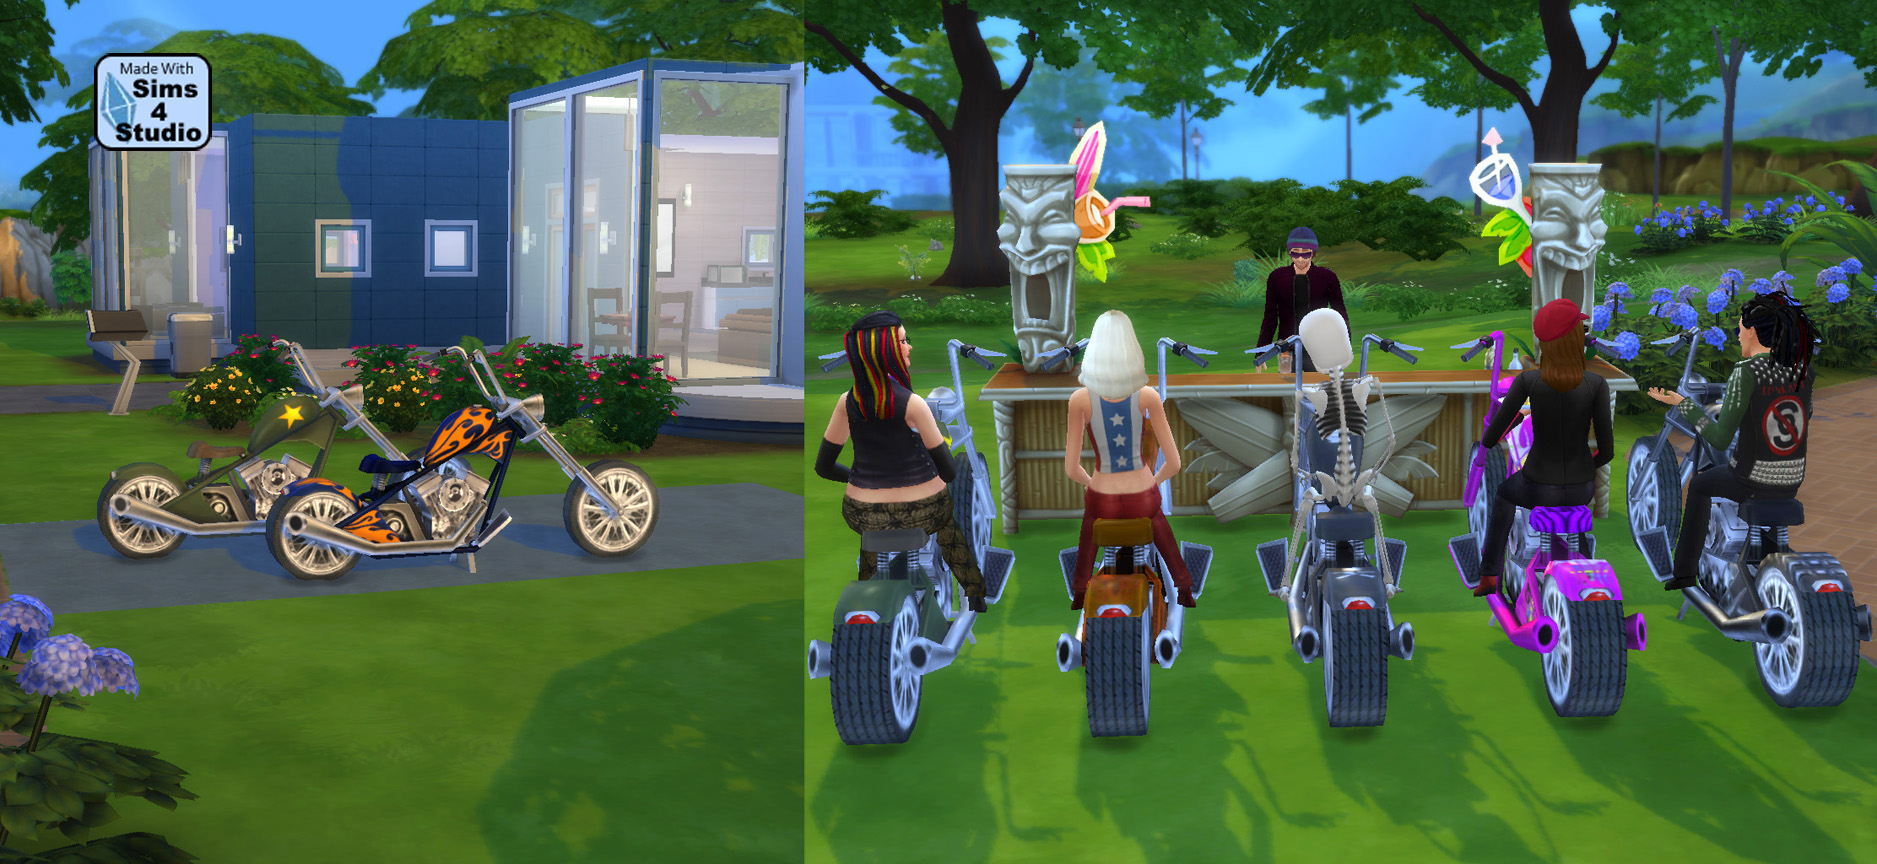 Mod The Sims Sittable Motorcycle Ts3 Conversion